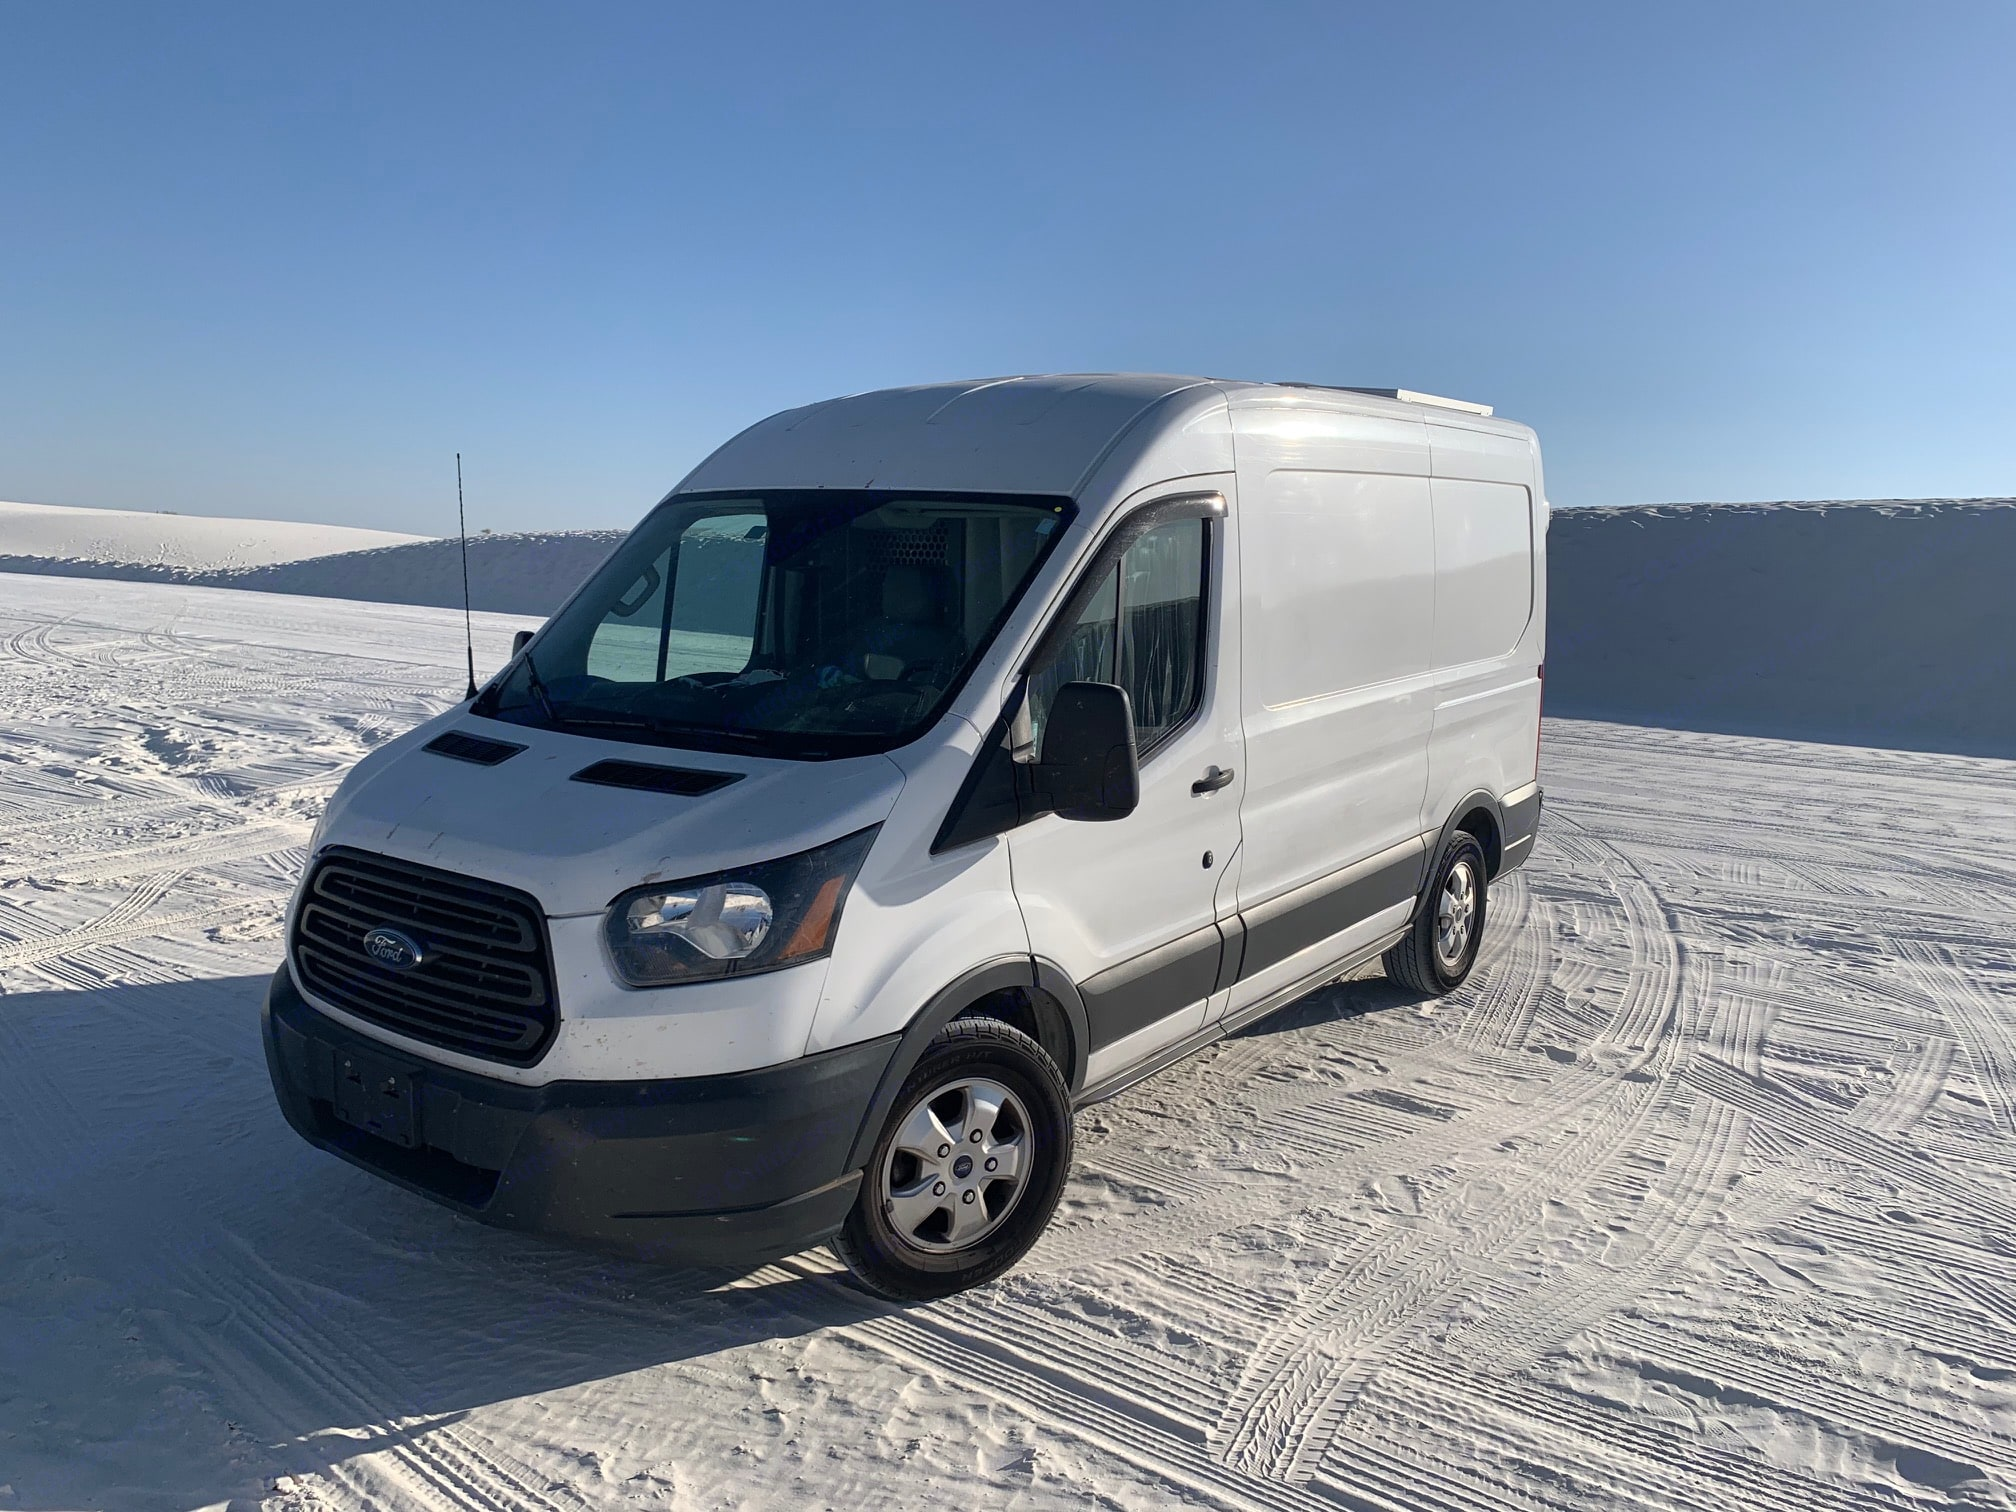 Bud showing off her color in White Sands National Park, NM. Ford Transit 2017